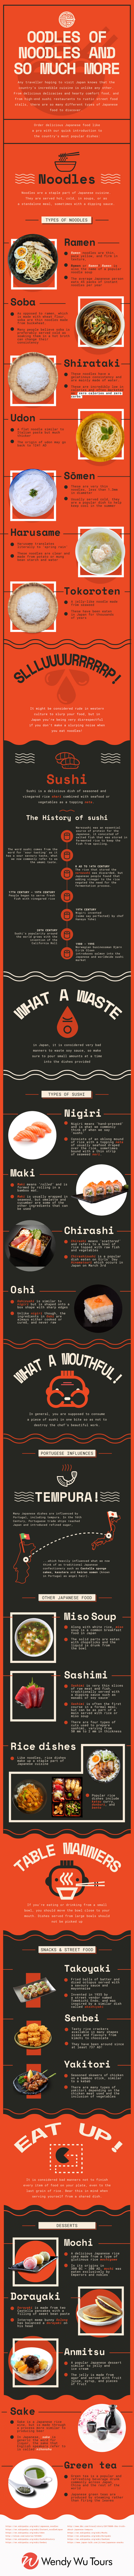 Noodle Symphonies: A Gastronomic Guide to the Gorgeous Flavors of Japanese Food - Infographic